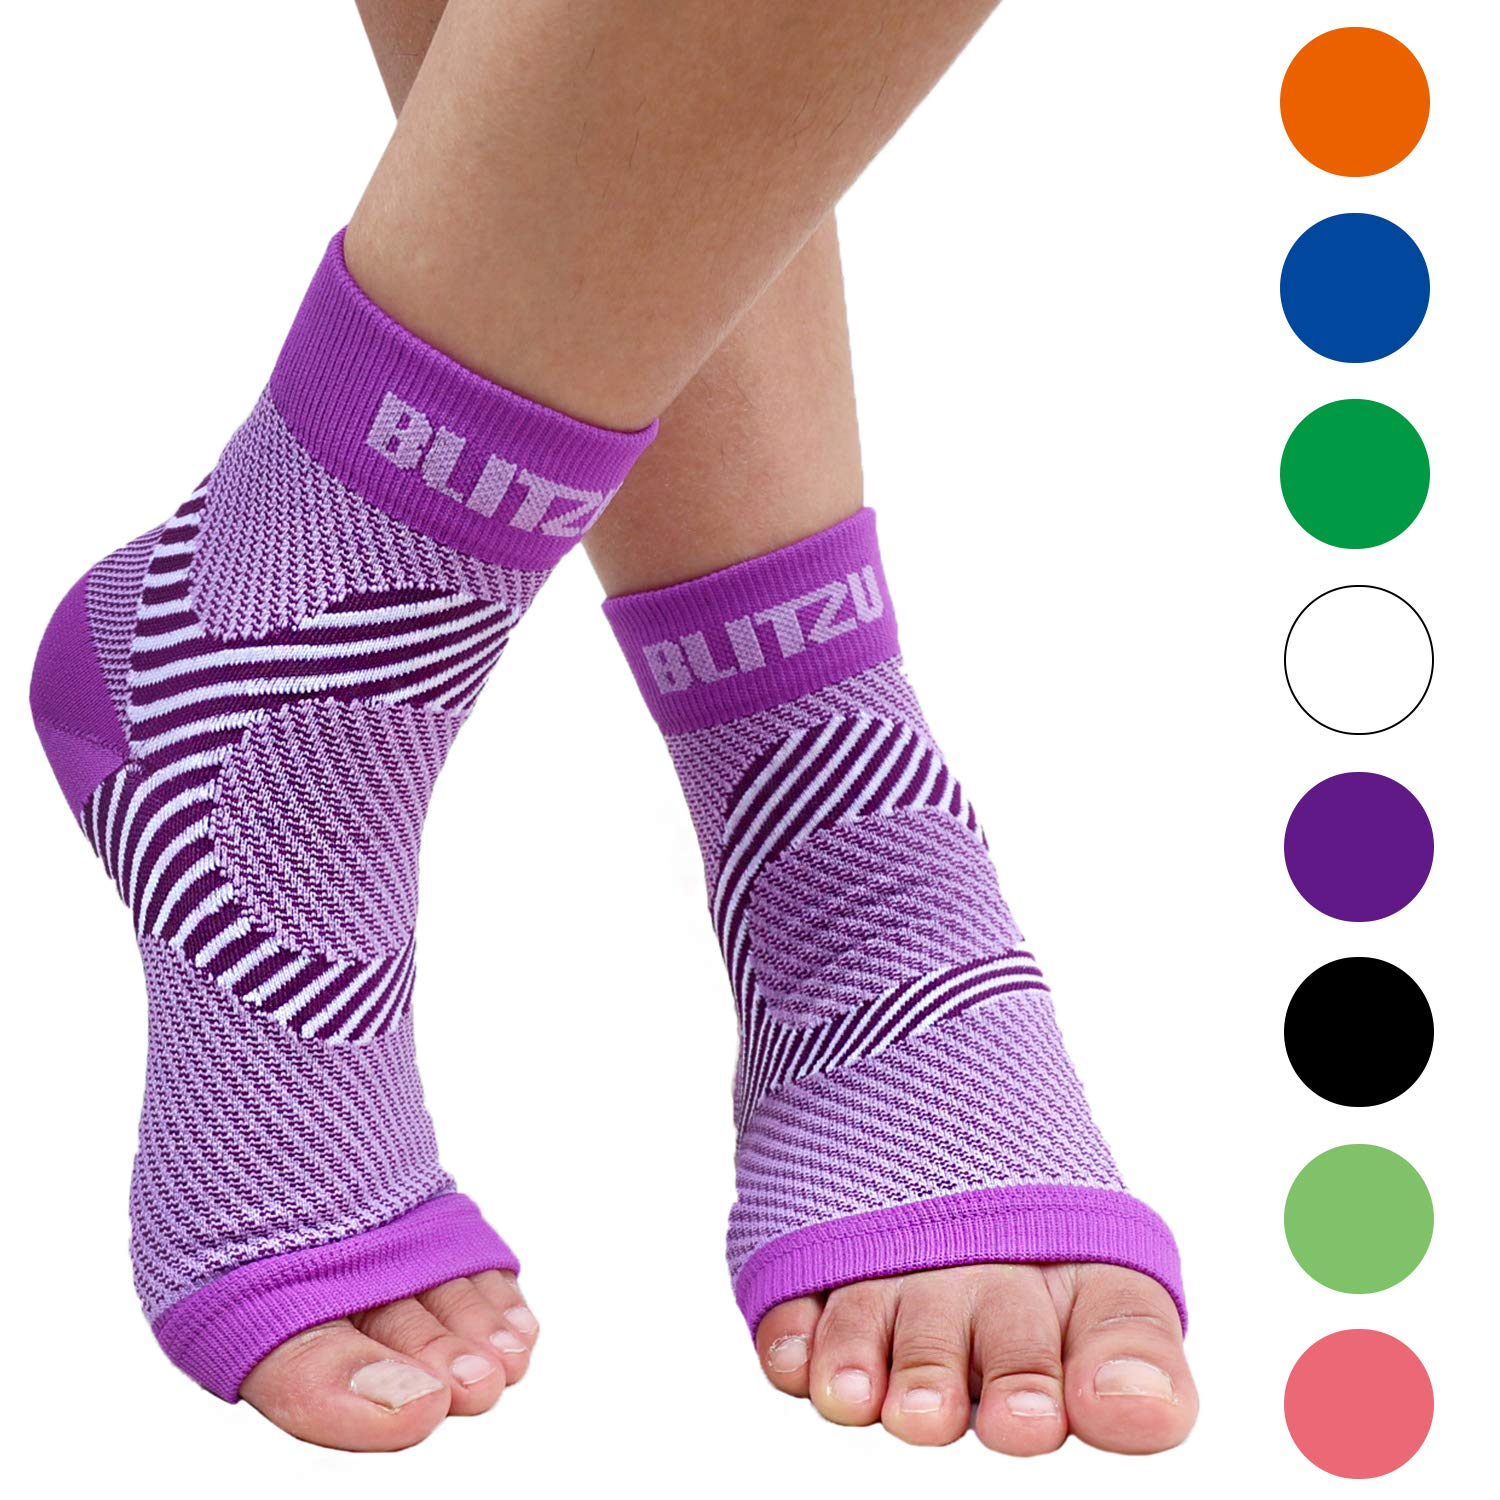 Plantar Fasciitis Socks with Arch Support, BEST Foot Care Compression Sleeve, Better than Night Splint, Eases Swelling & Heel Spurs, Ankle Brace Support, Increases Circulation, Relieve Pain PURPLE S/M